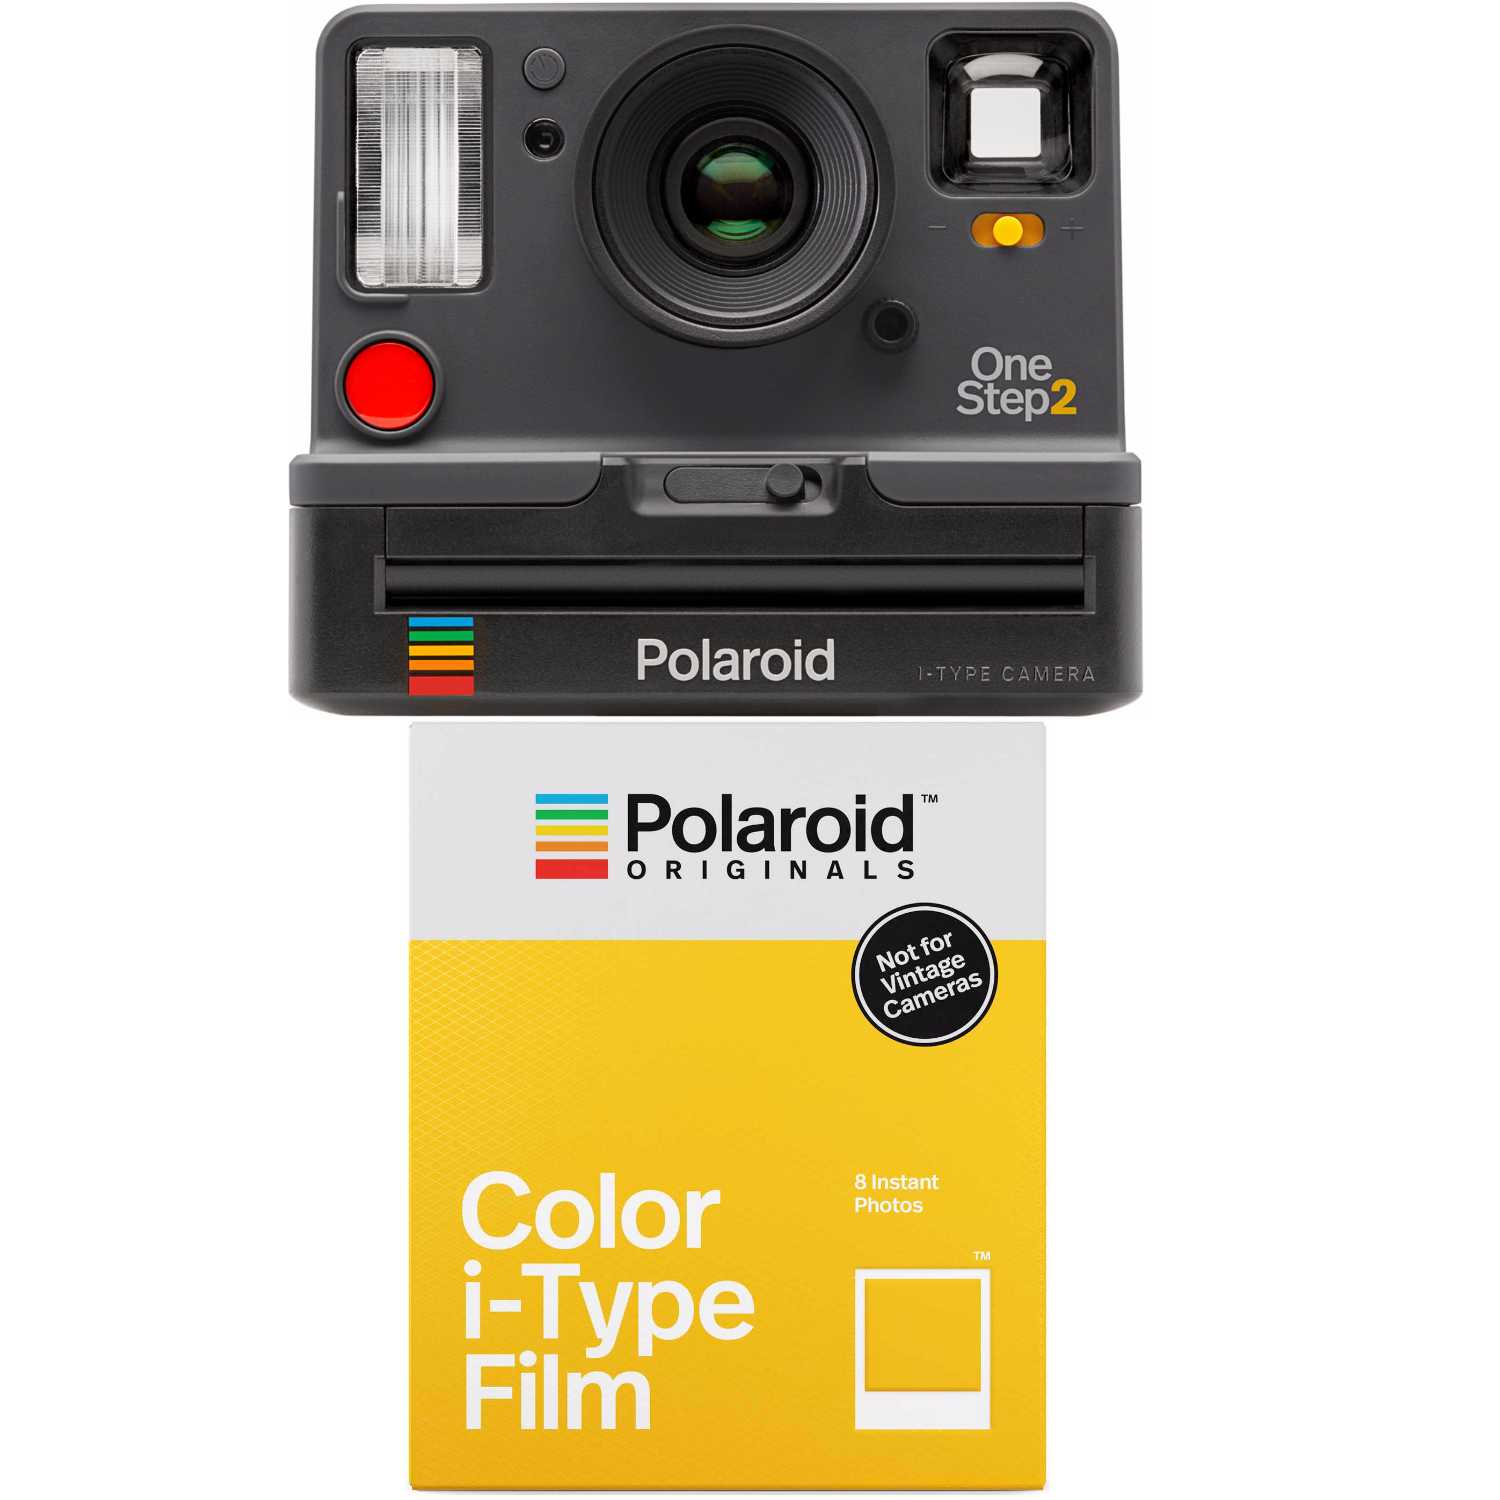 Polaroid OneStep2 i-Type Rechargeable VF Camera (Graphite Grey) with Color Film by Polaroid Originals